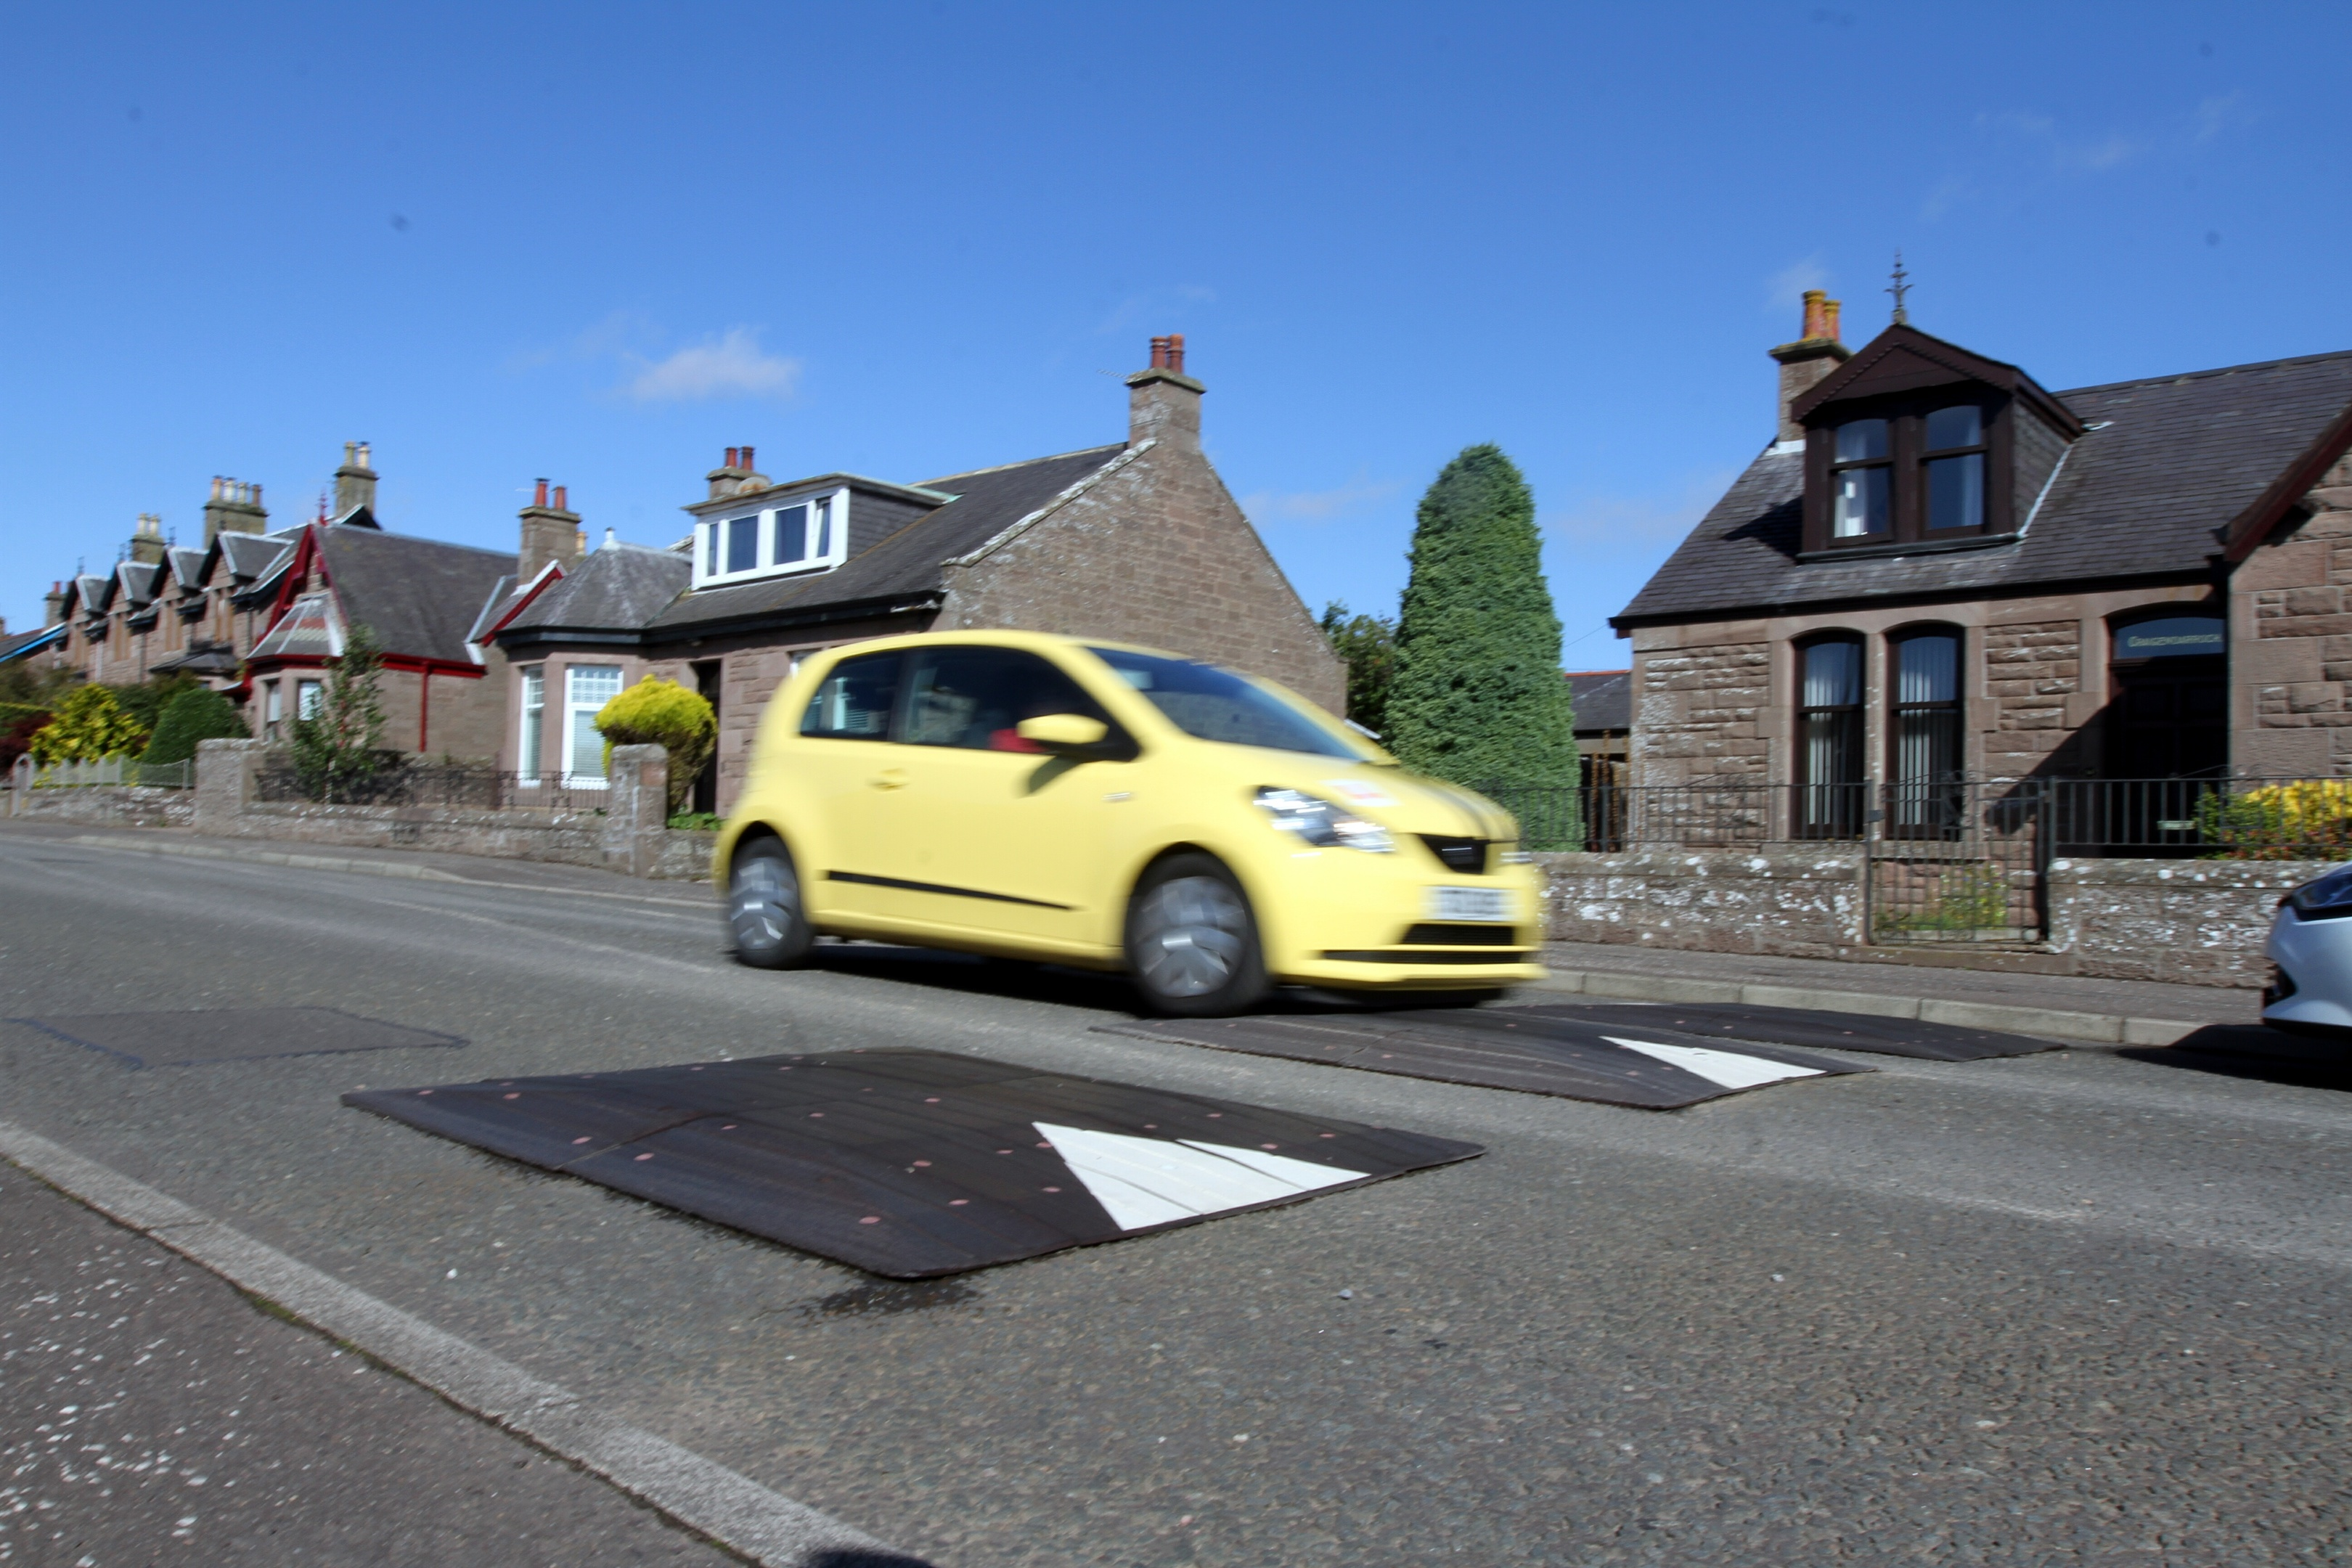 Speed humps will stay in Taylor Street